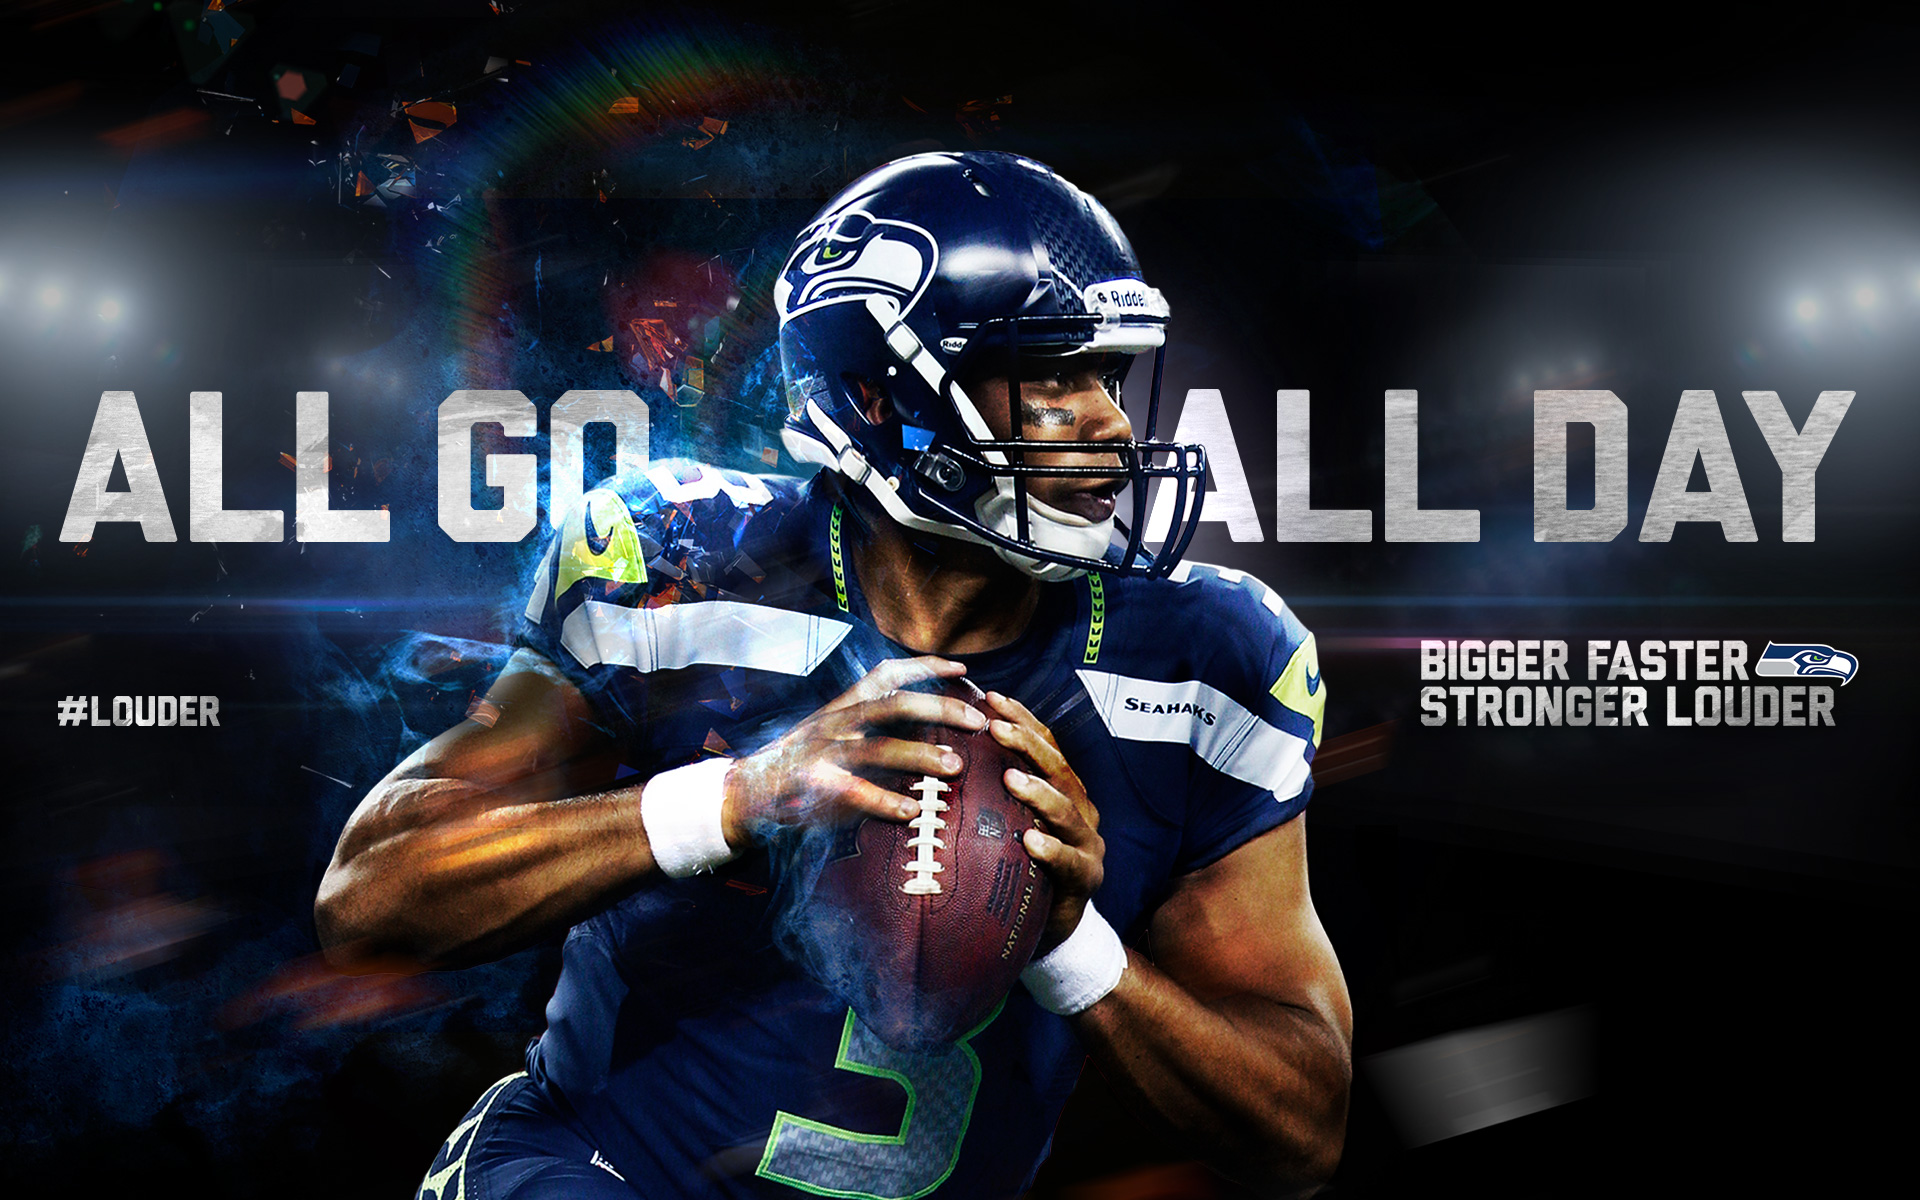 Seahawks NFL Background Full 1080p Ultra HD Wallpapers 1920x1200